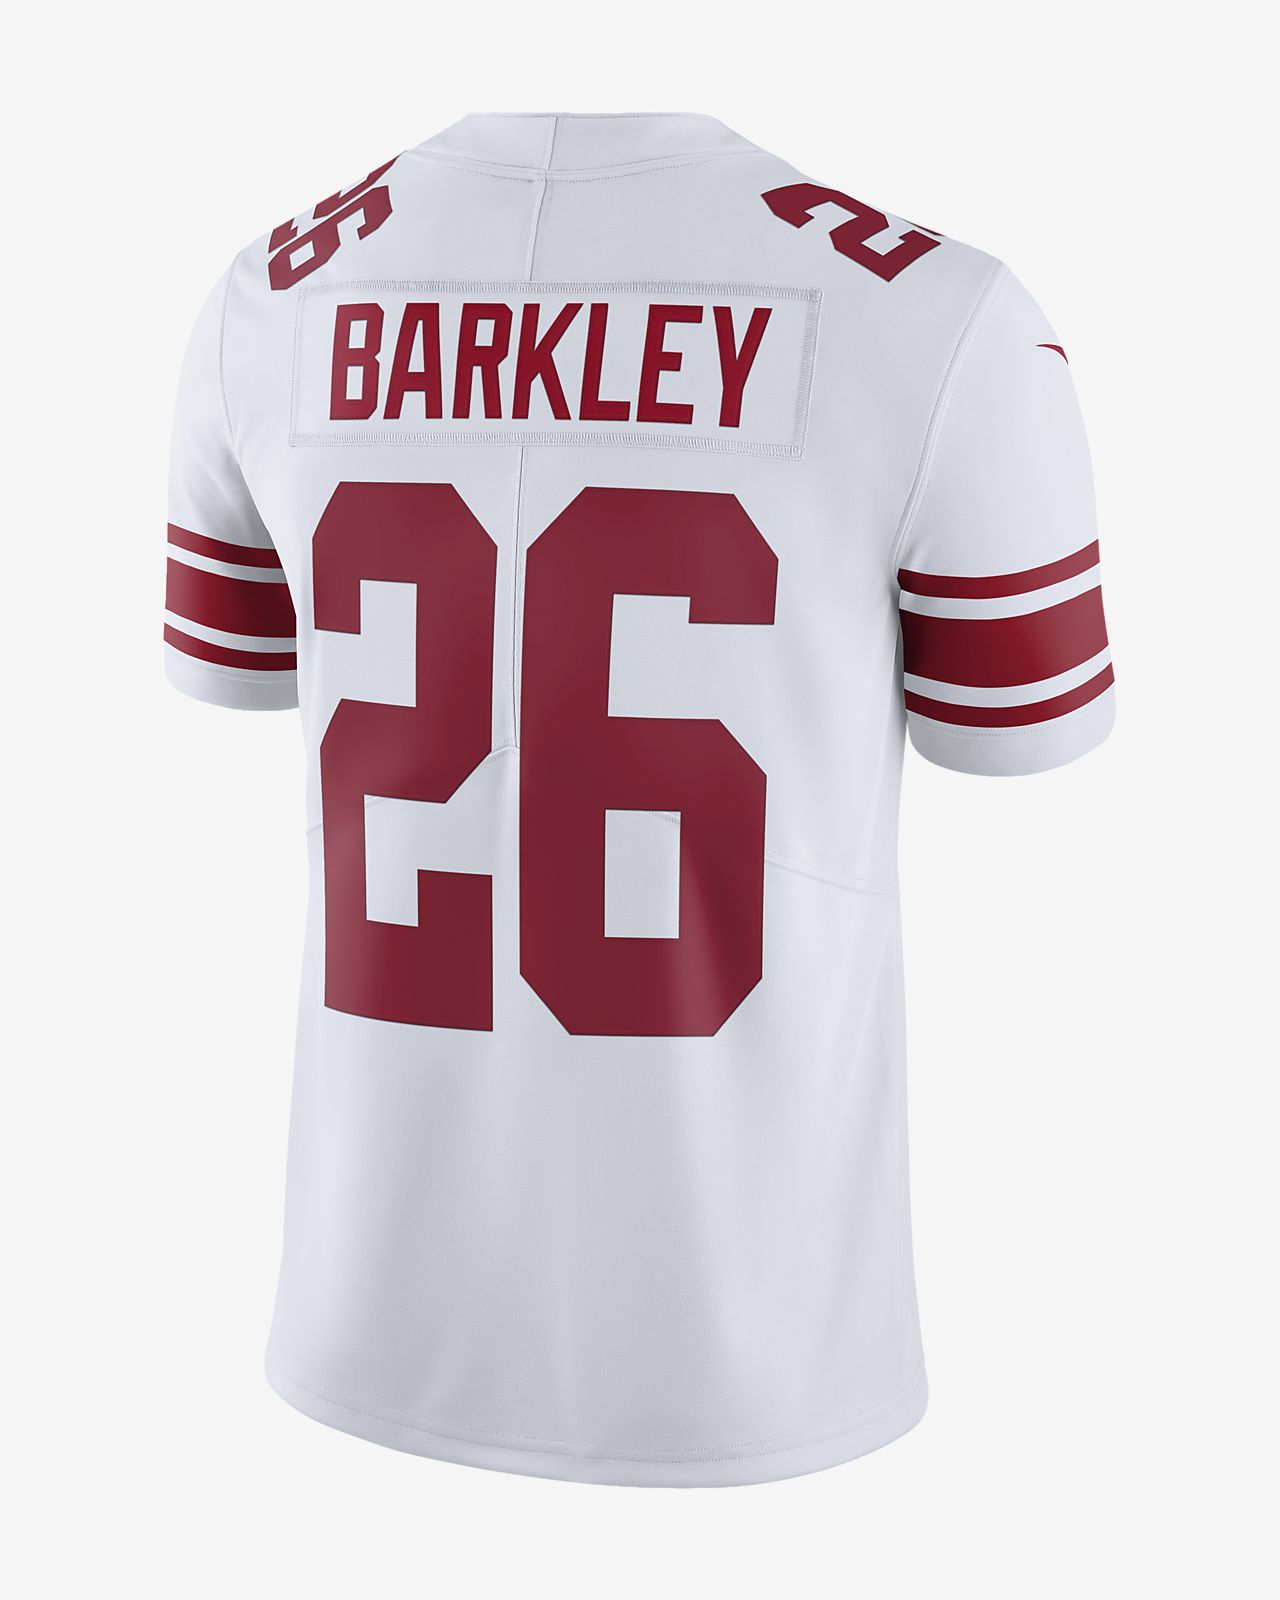 100% authentic a1e41 0b2ab NFL New York Giants (Saquon Barkley) Men's Limited Football Jersey